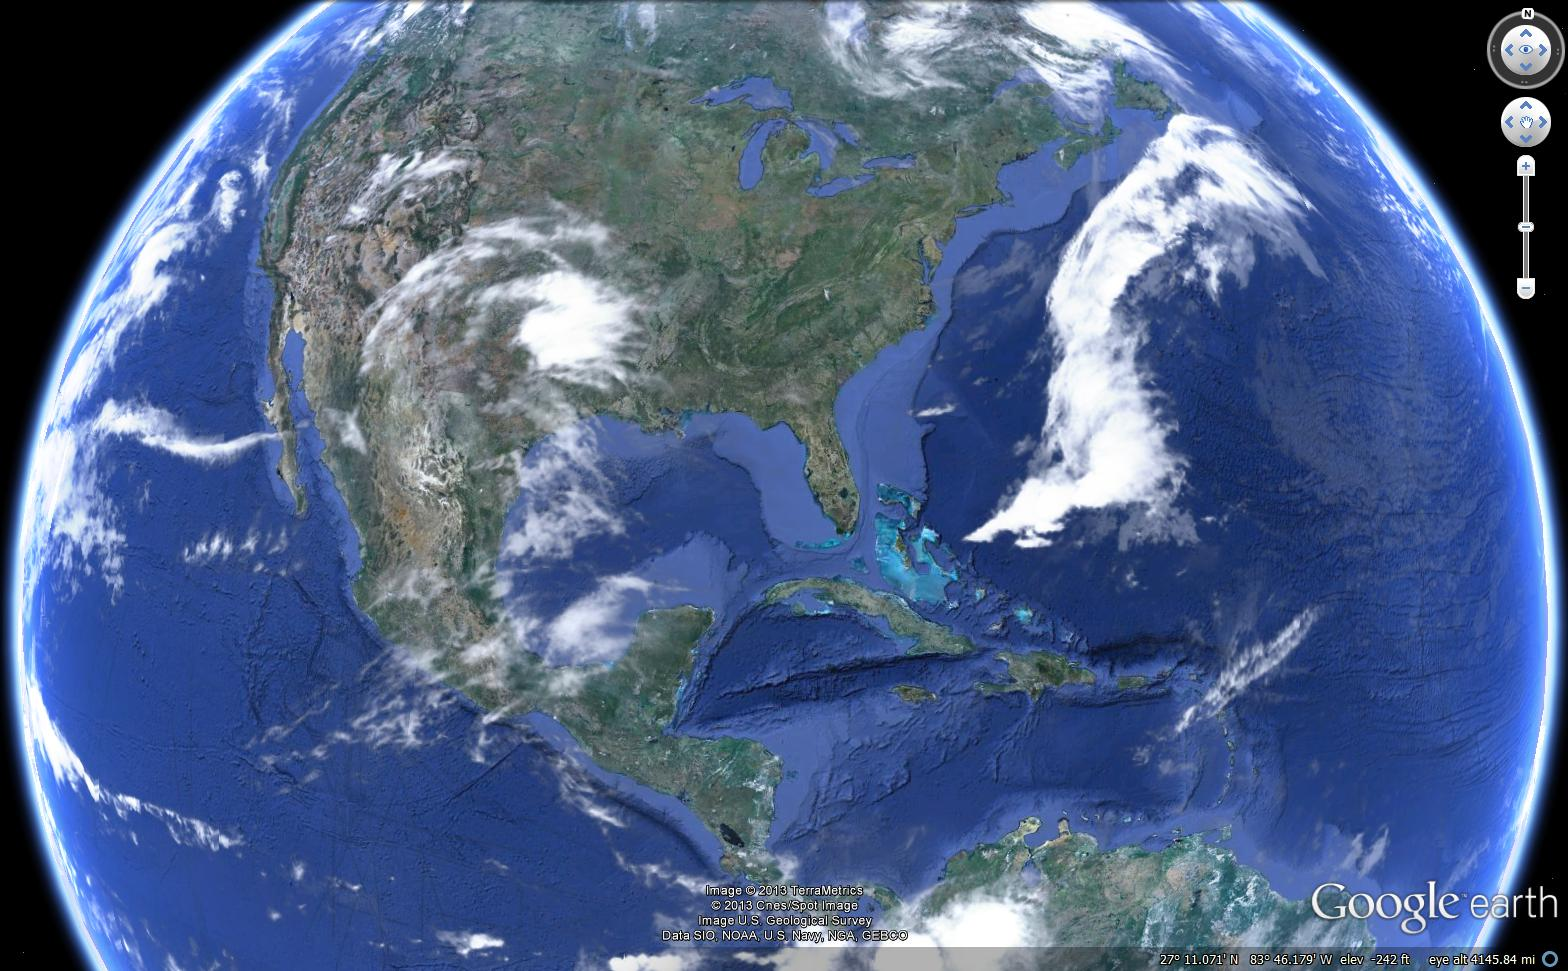 Google Earth Blog - The amazing things about Google Earth